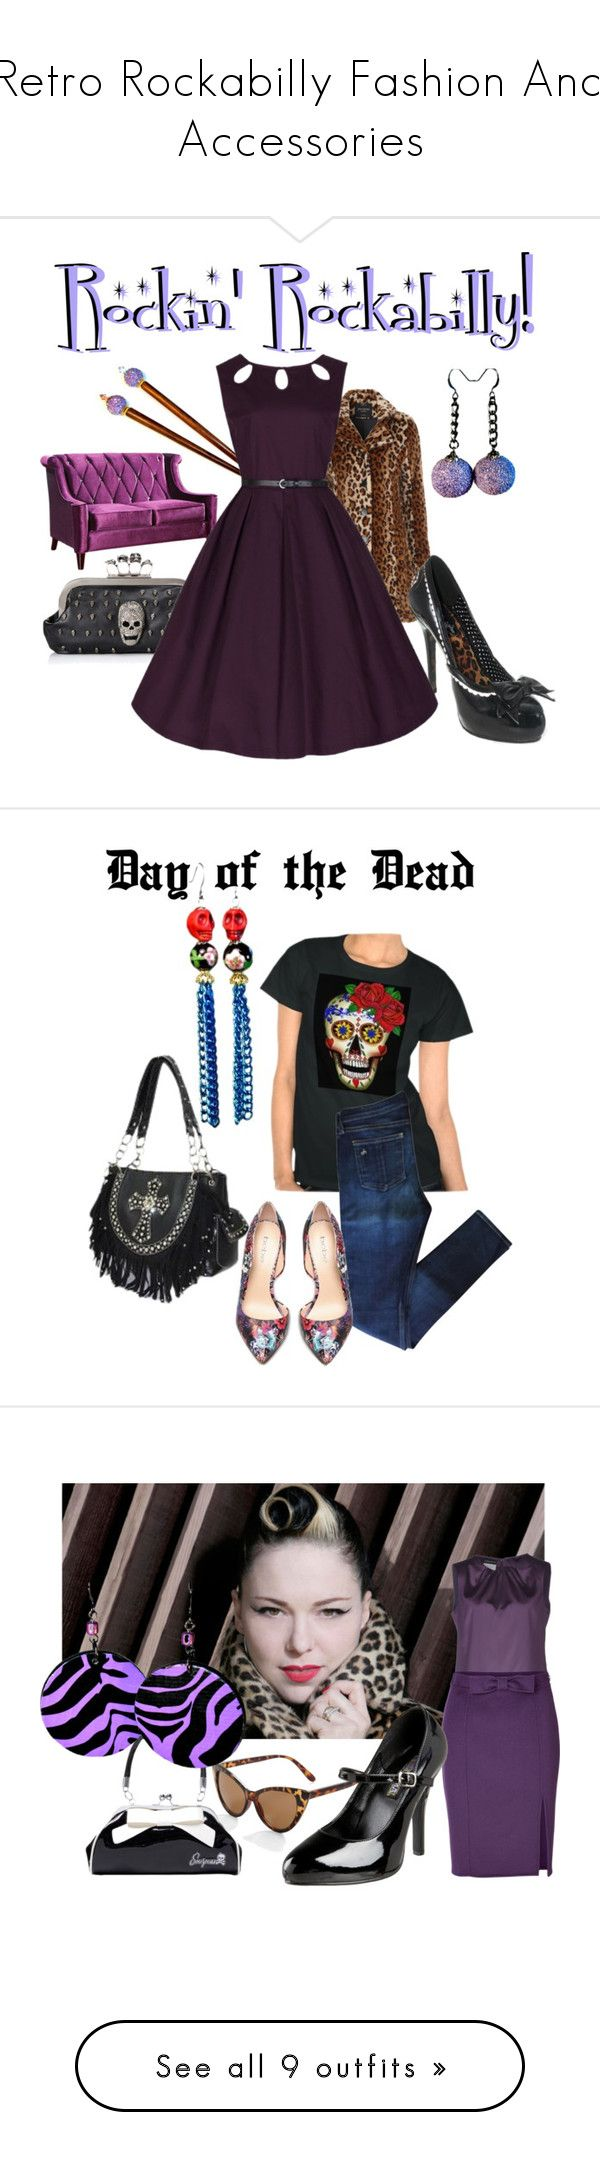 """Retro Rockabilly Fashion And Accessories"" by blukatdesign ❤ liked on Polyvore featuring retro, rockabilly, Armen Living, Jane Norman, Bettie Page, rag & bone, Bebe, Dayofthedead, sugarskull and Emporio Armani"